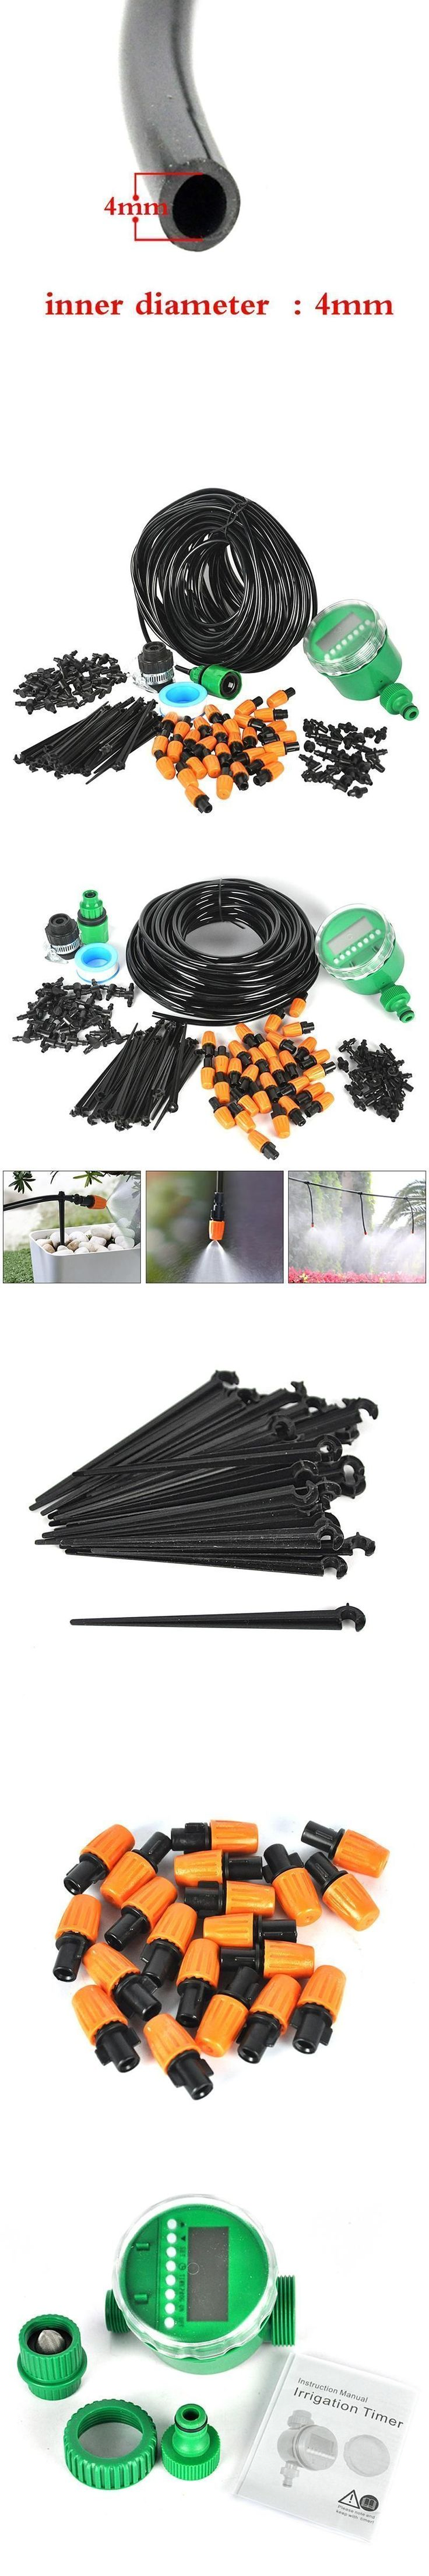 25M Automatic Micro Drip Irrigation System With Water Timer Plant Watering Garden Hose Kits Adjustable Dripper Controller Suits #WateringTimers #watergarden